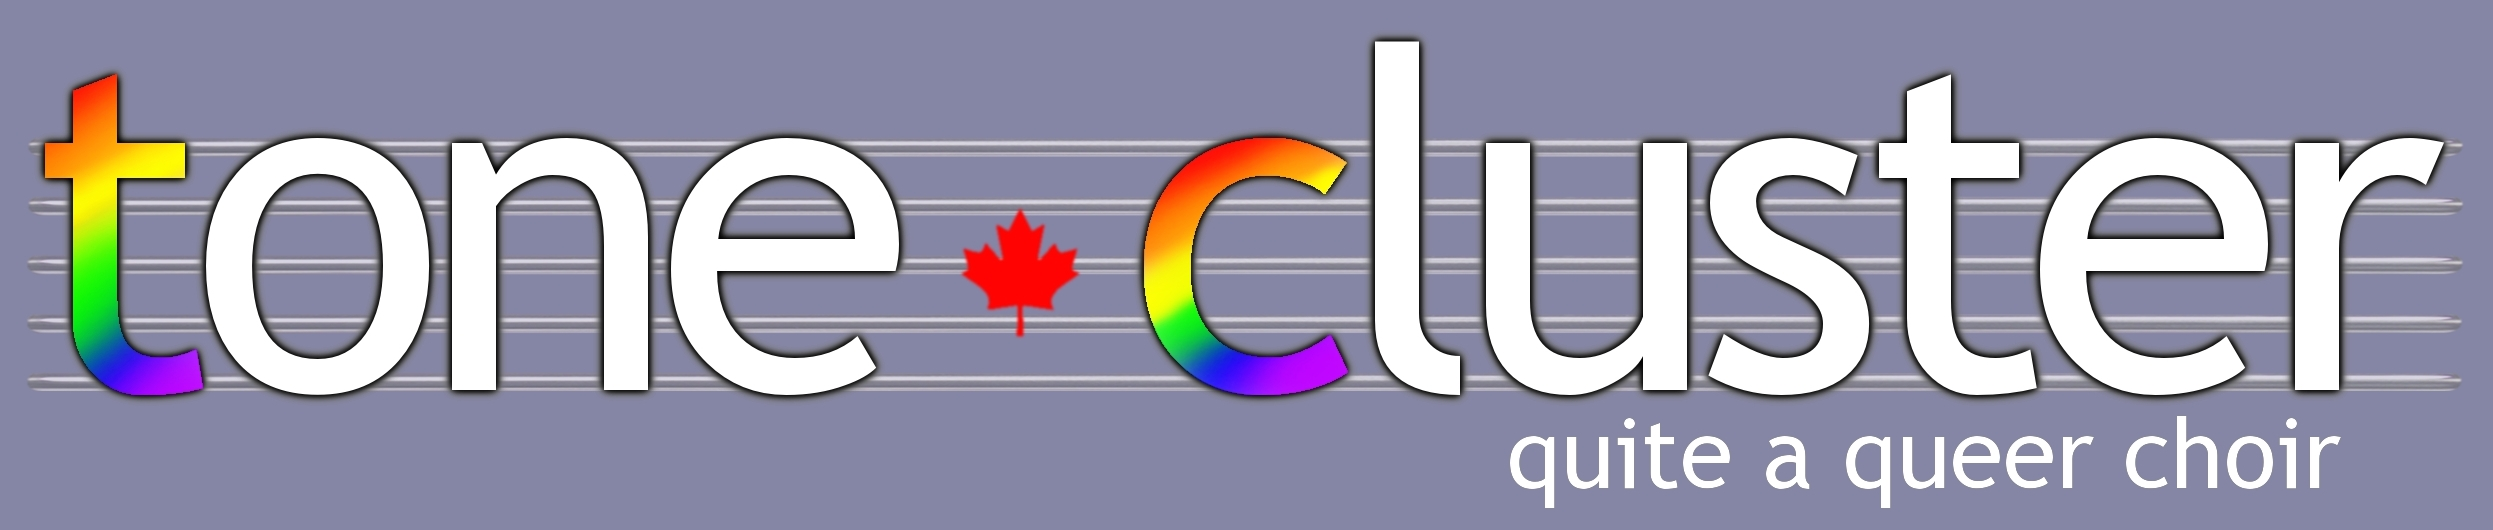 Tone Cluster - quite a queer choir website